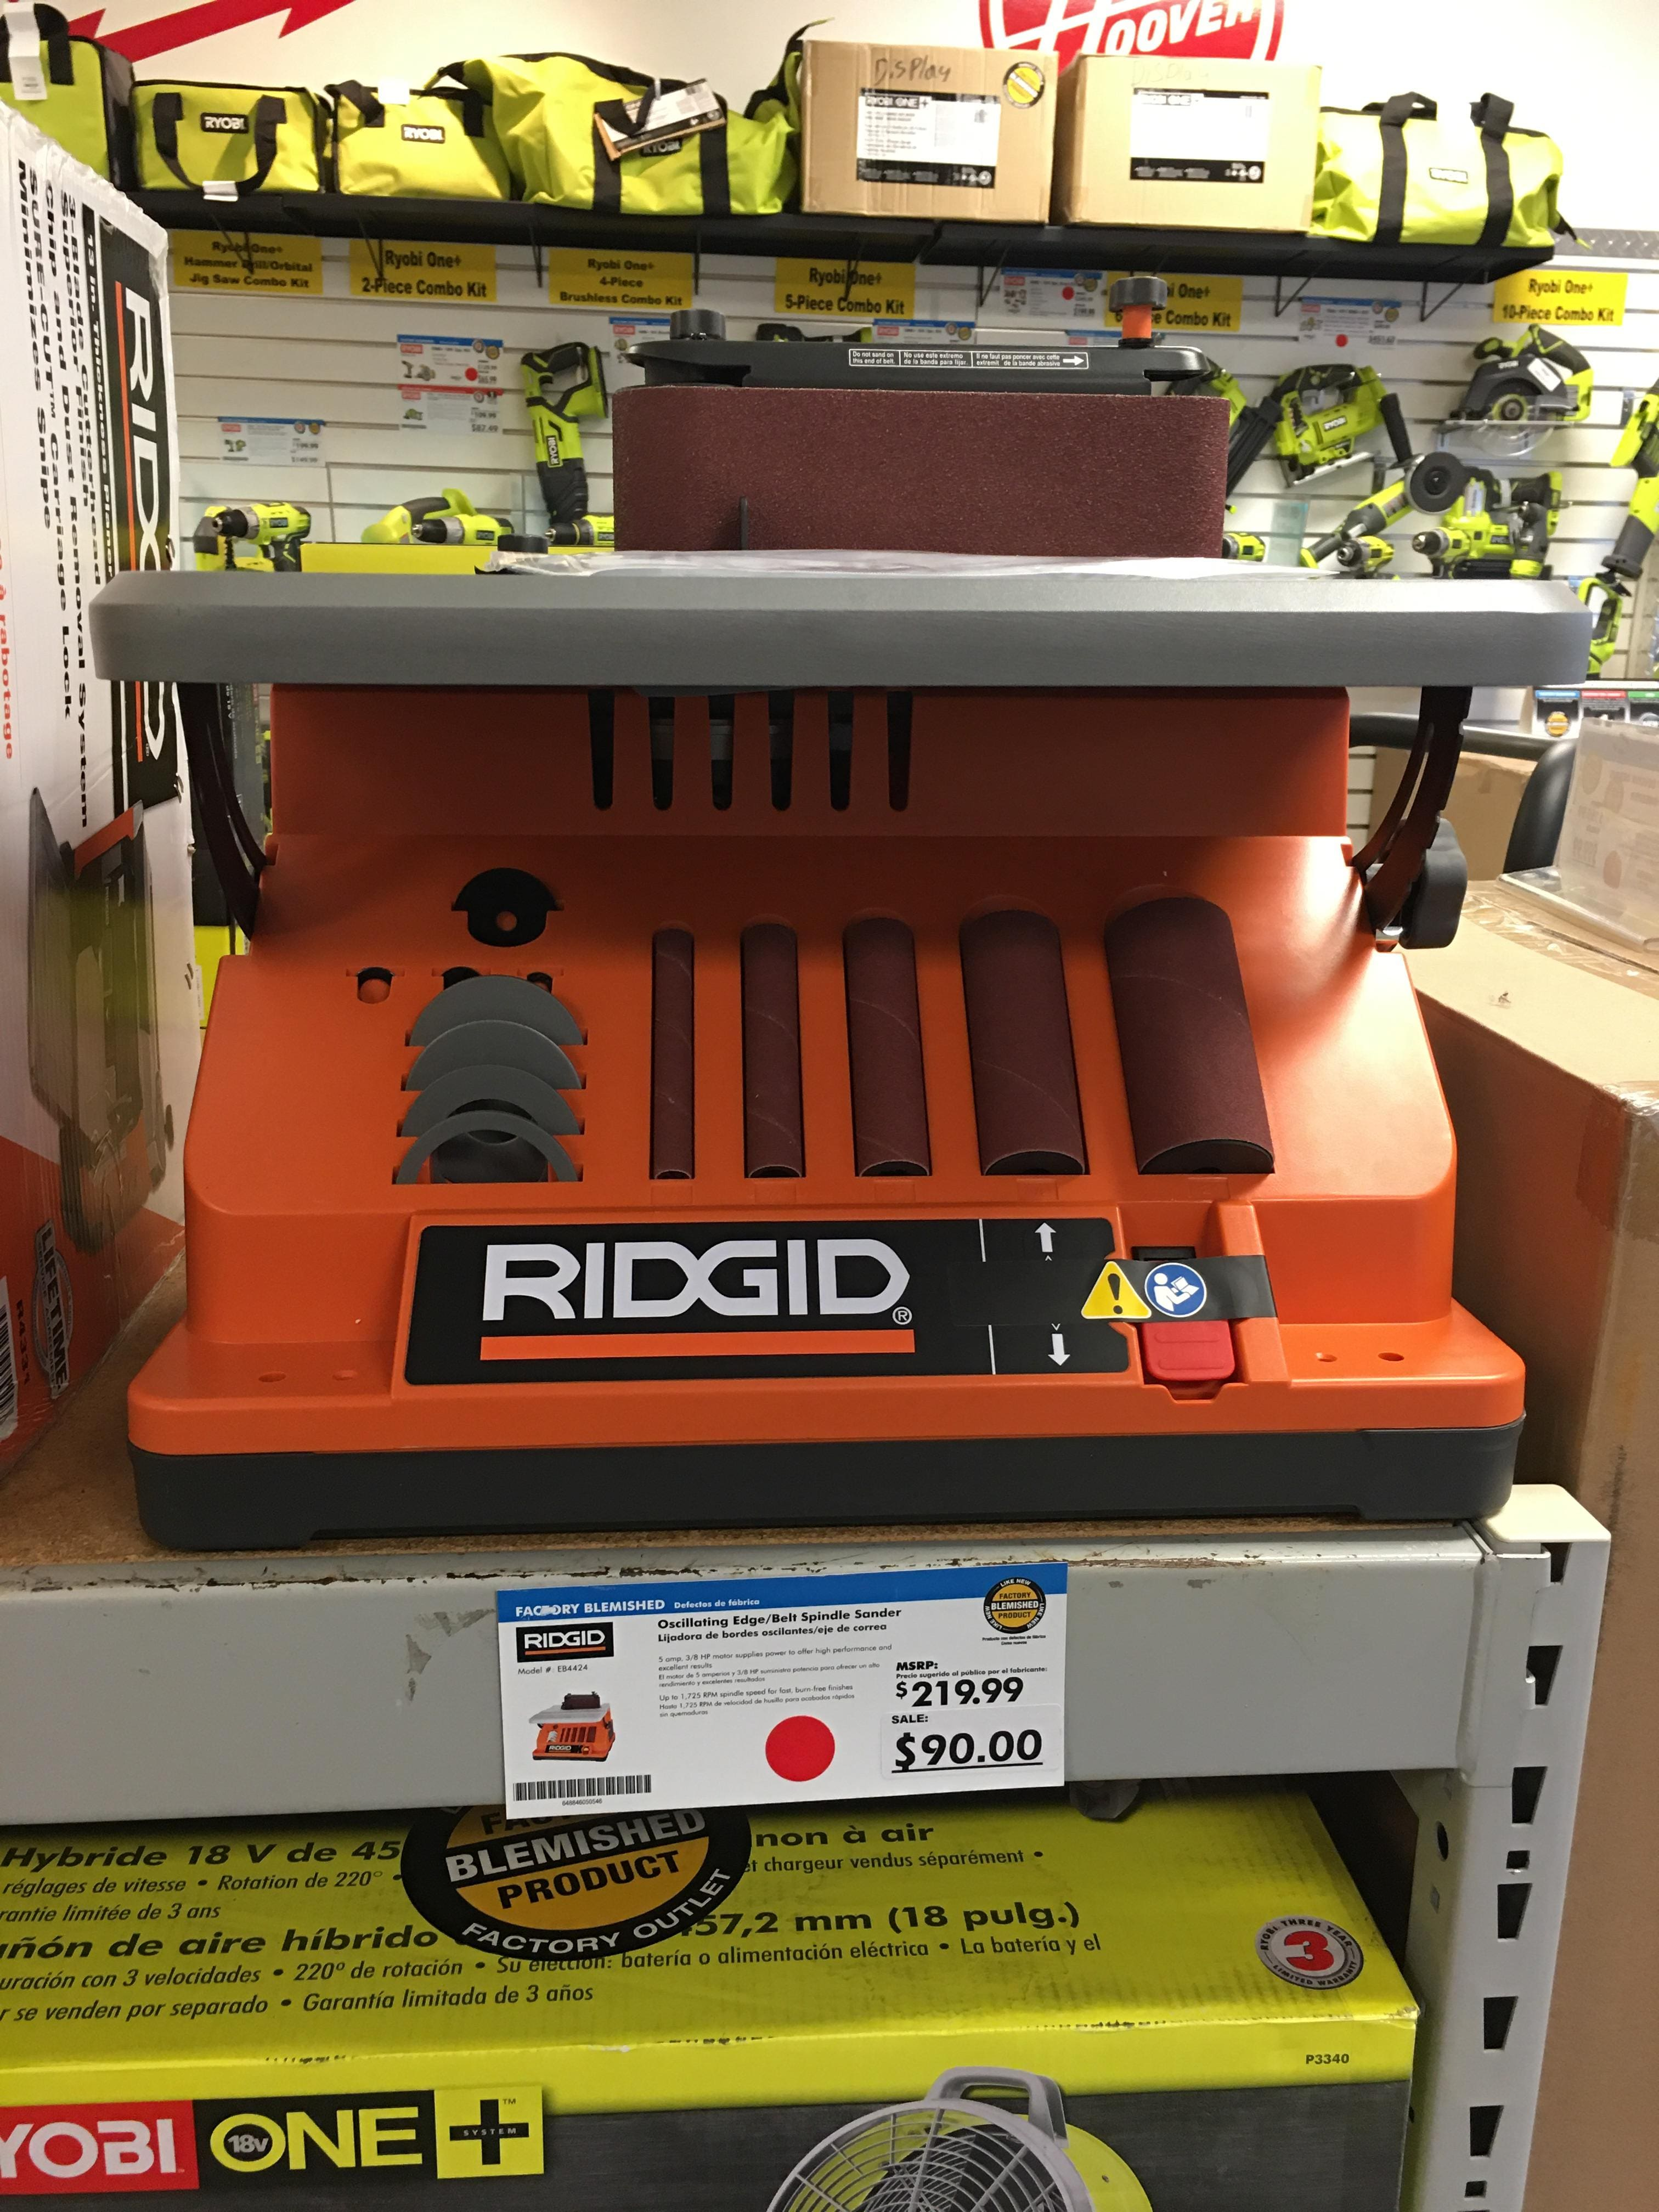 Ridgid Oscillating Edge/Belt Spindle Sander (Factory Blemished) $90 at Direct Tools Outlet In-Store YMMV